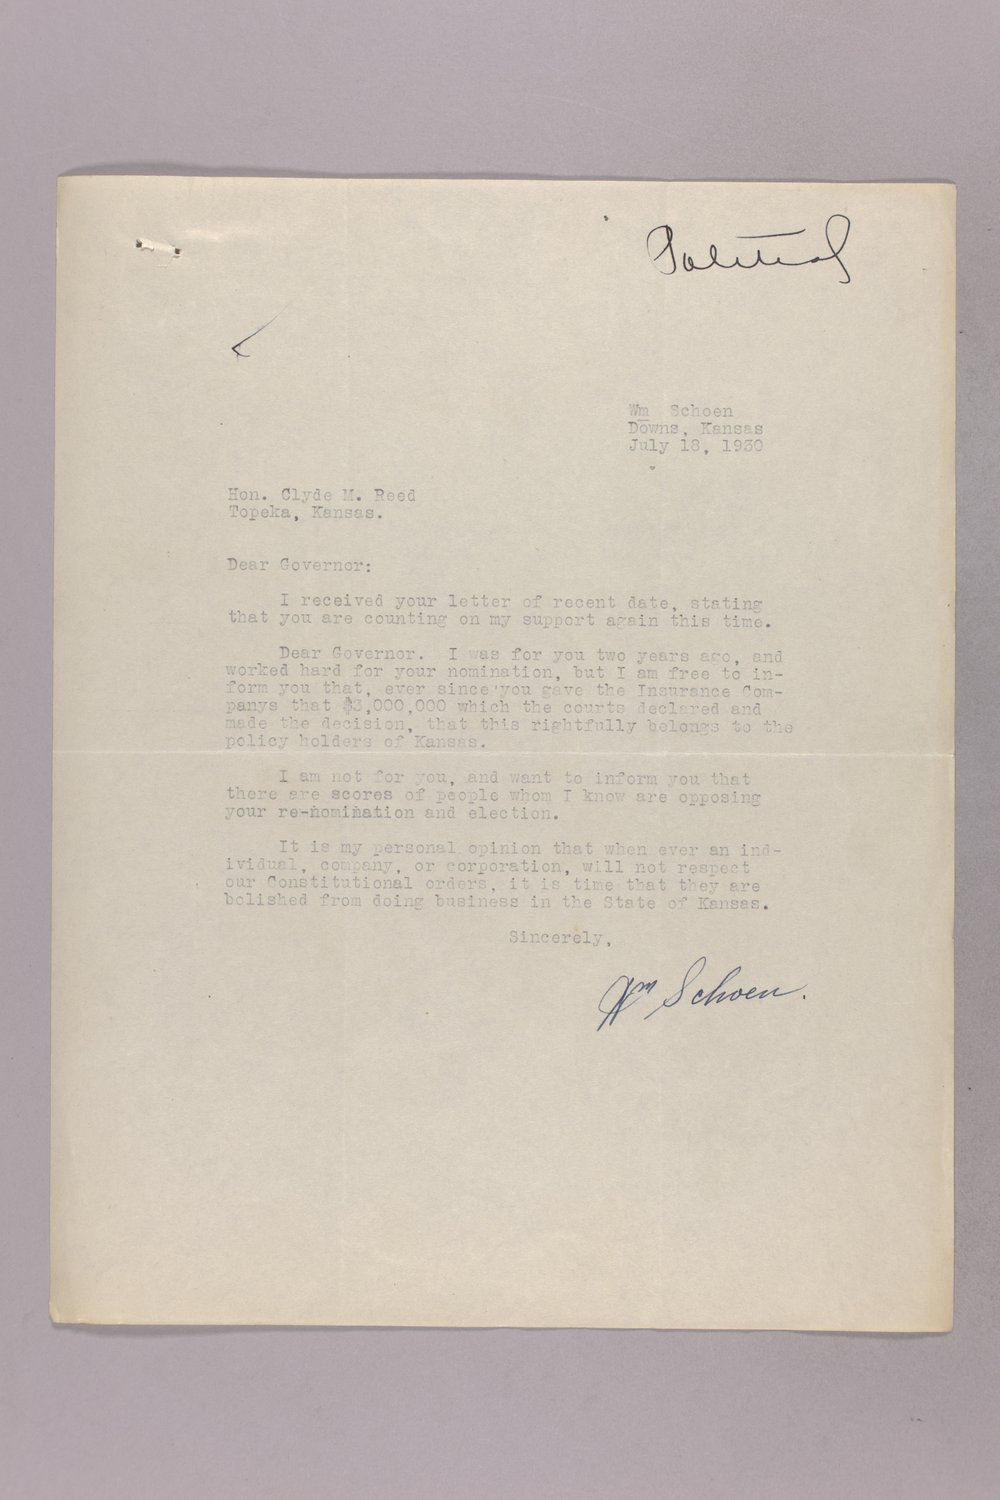 Governor Clyde M. Reed correspondence, hail insurance deduction - 6